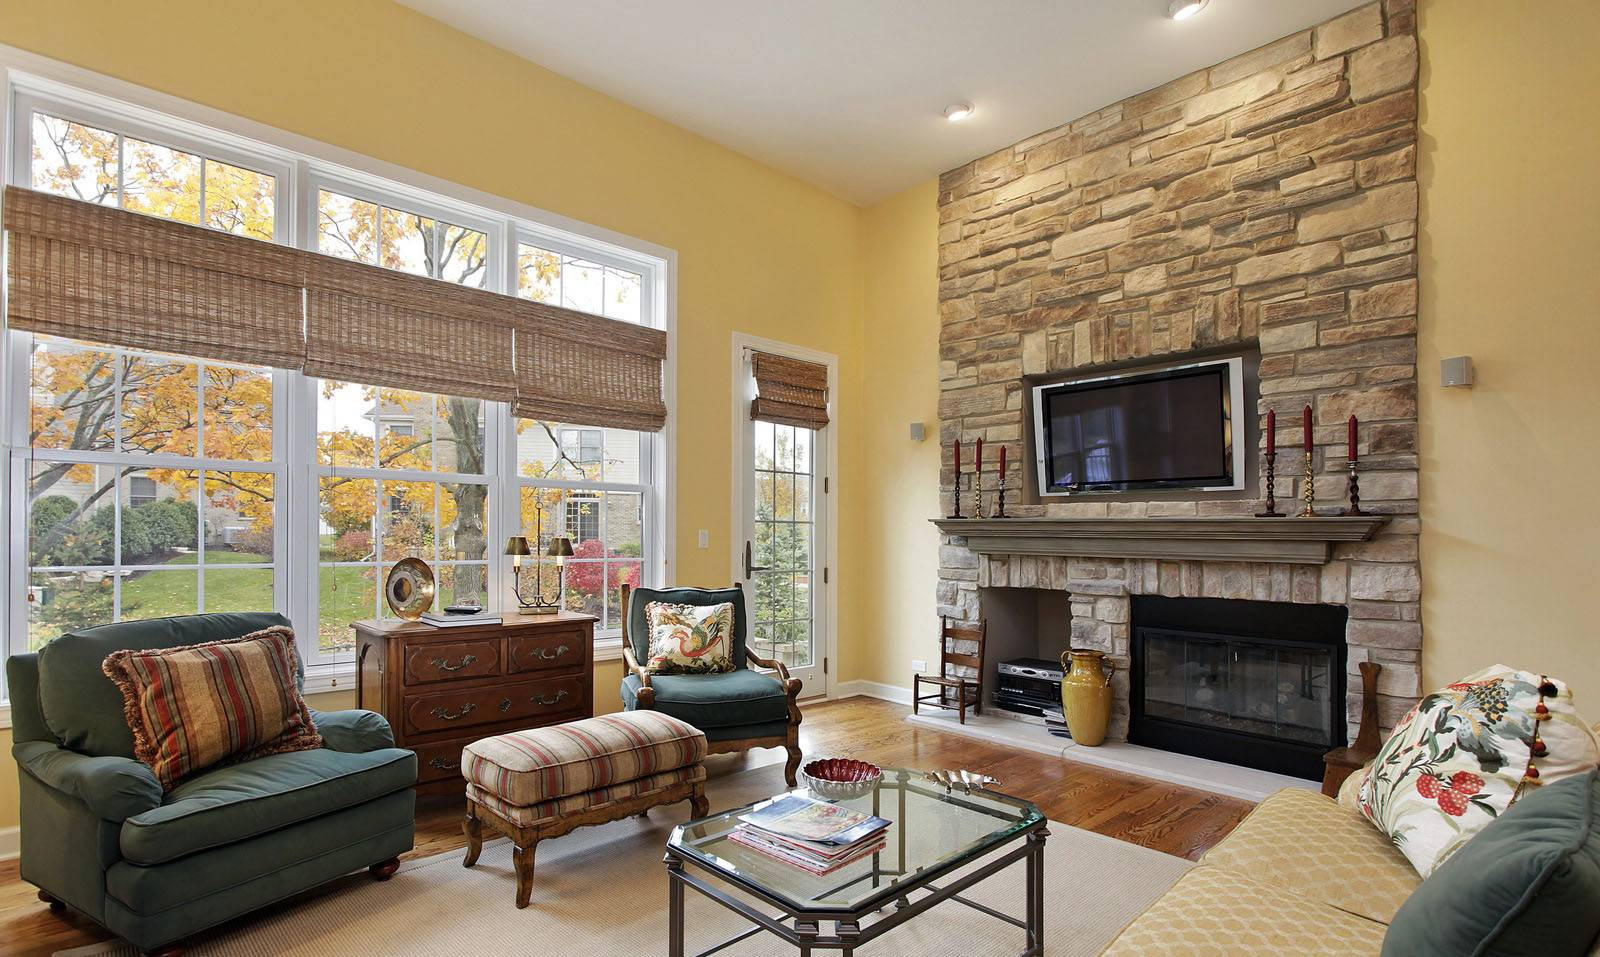 Furniture Placement Small Living Room Fireplace ... on Small Space Small Living Room With Fireplace  id=21821